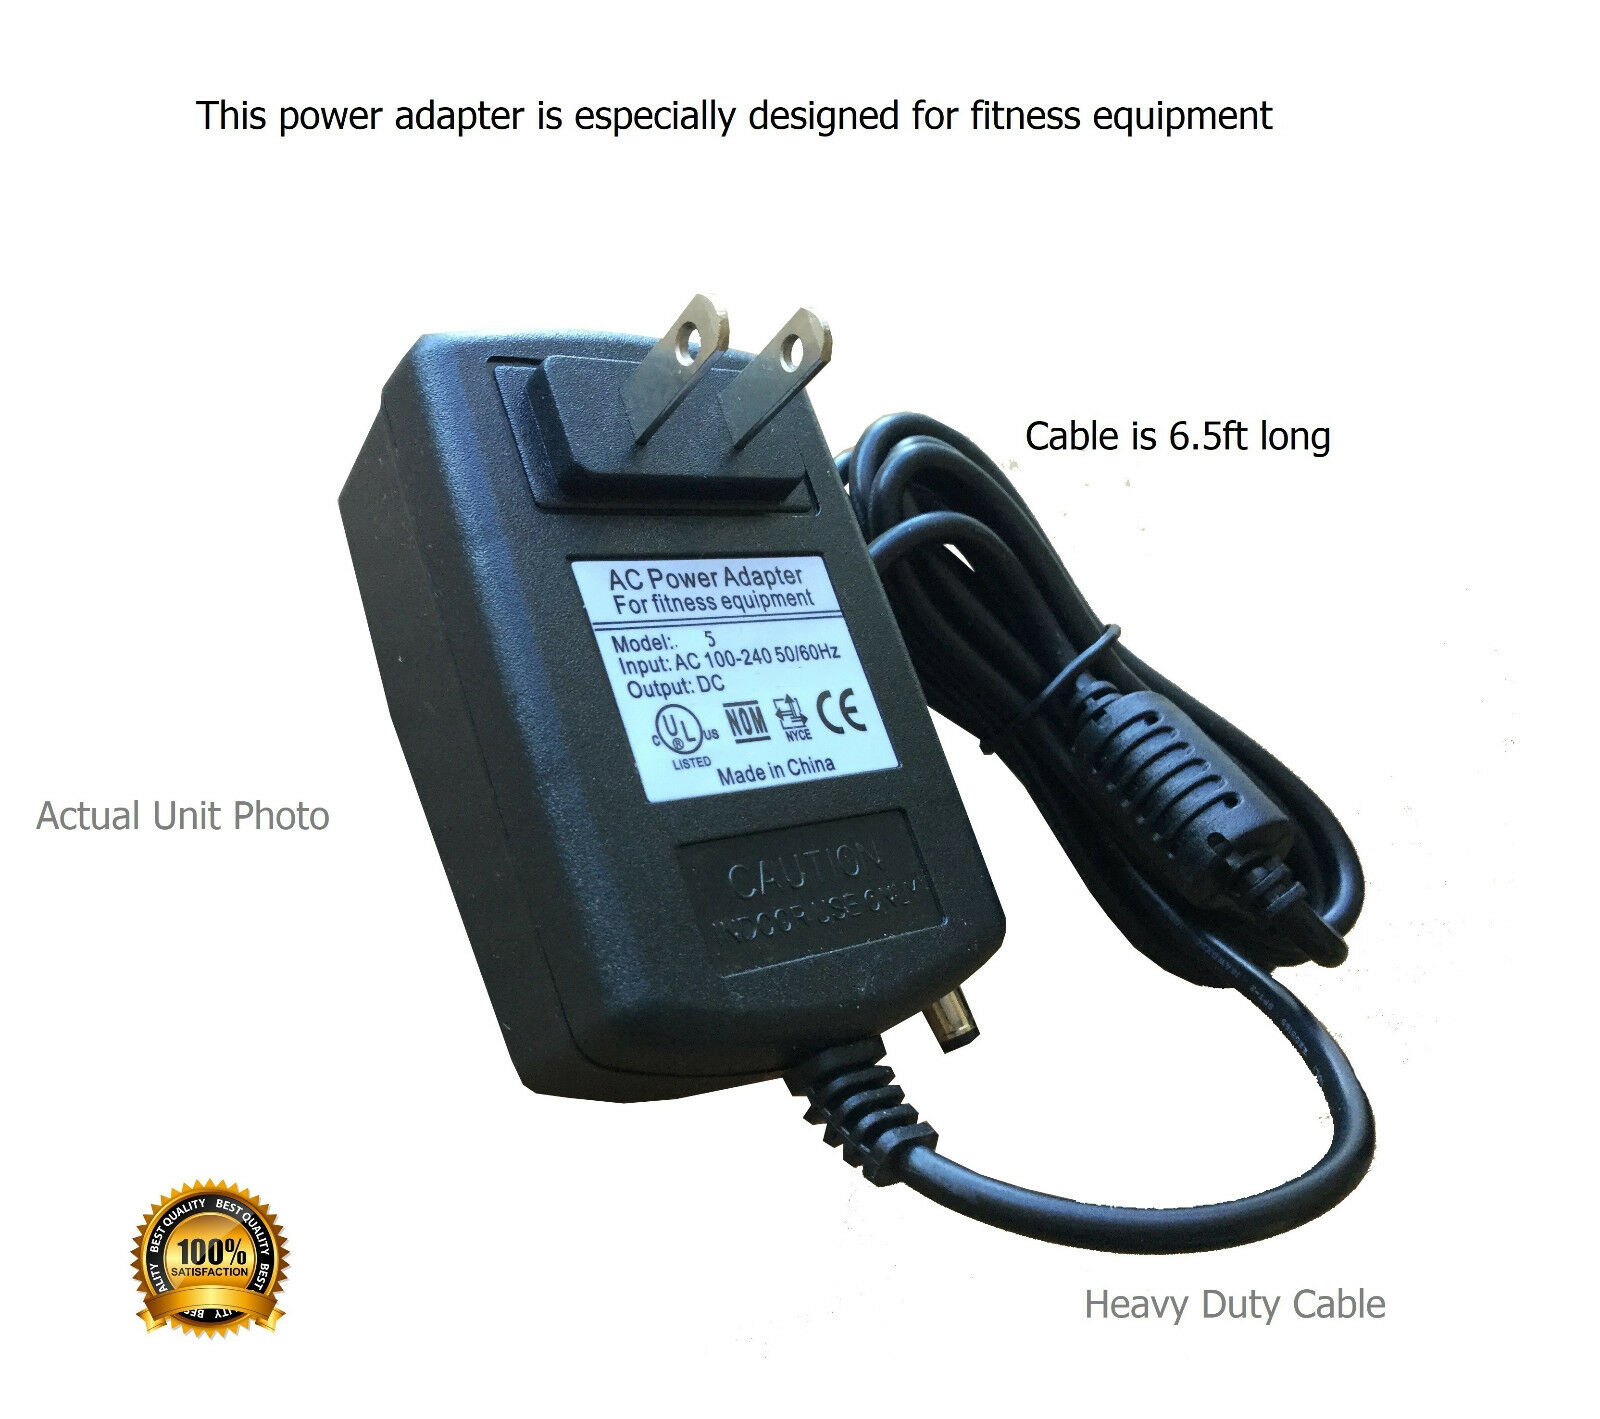 AC Adapter Power Supply for Proform Elliptical 15.5 S - 831.286220